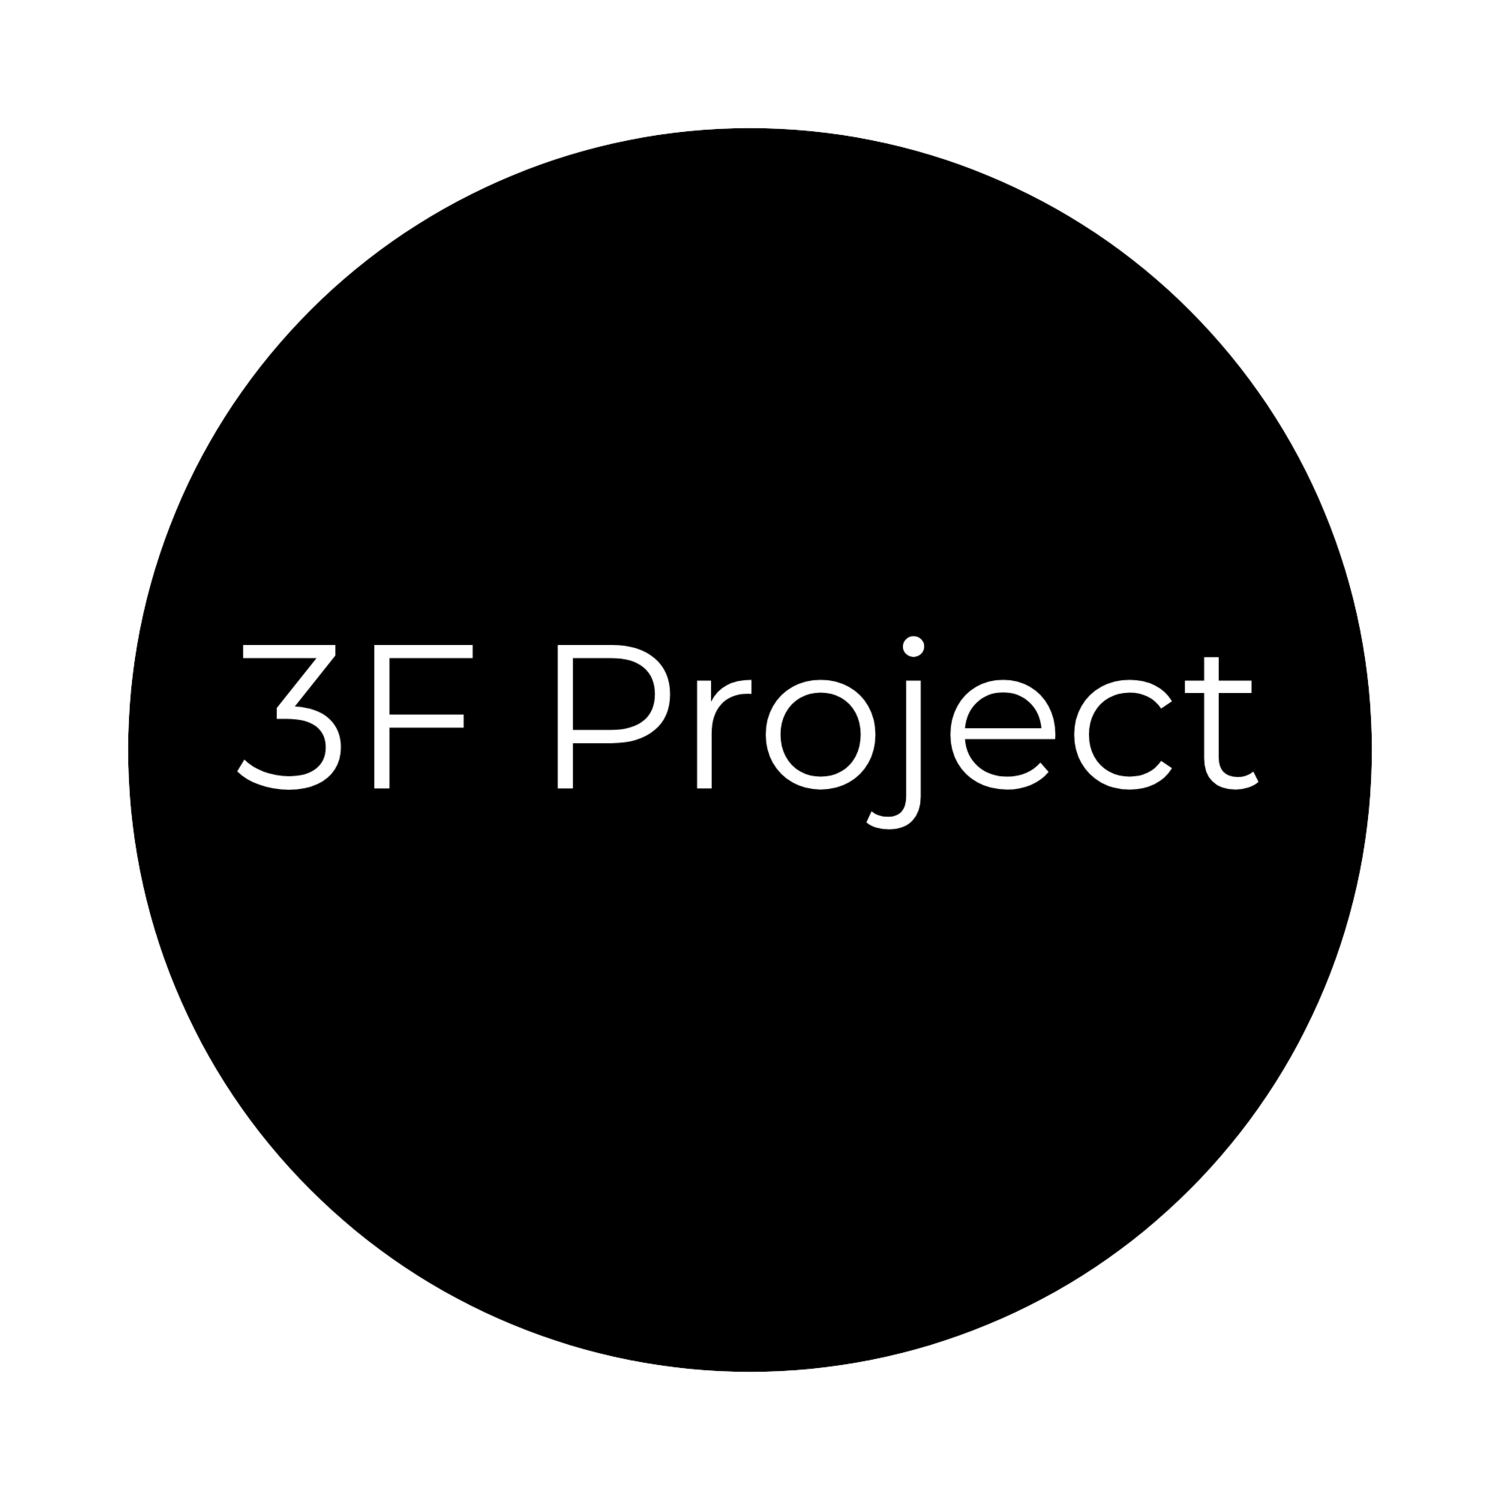 the 3F Project